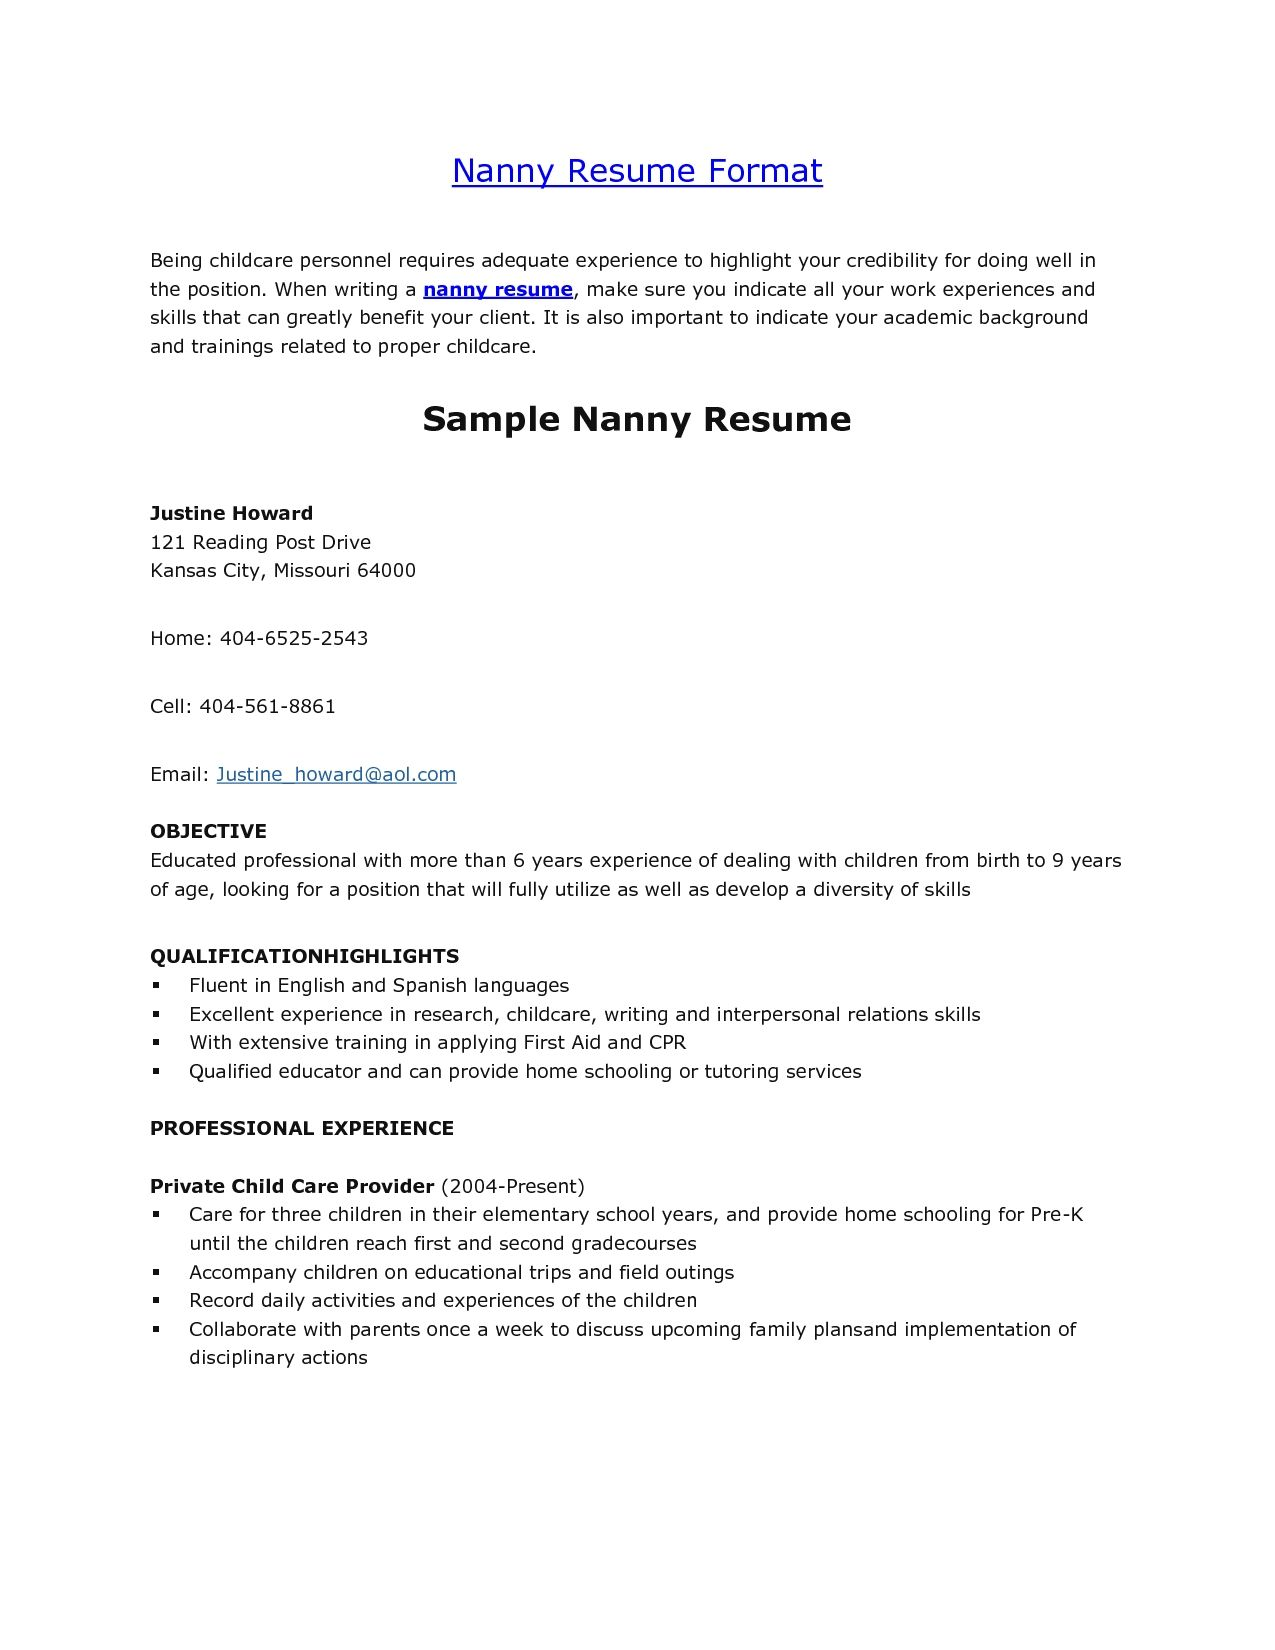 Nanny Resume Sample What To Put On A Cover Letter For Resumecompares Linux